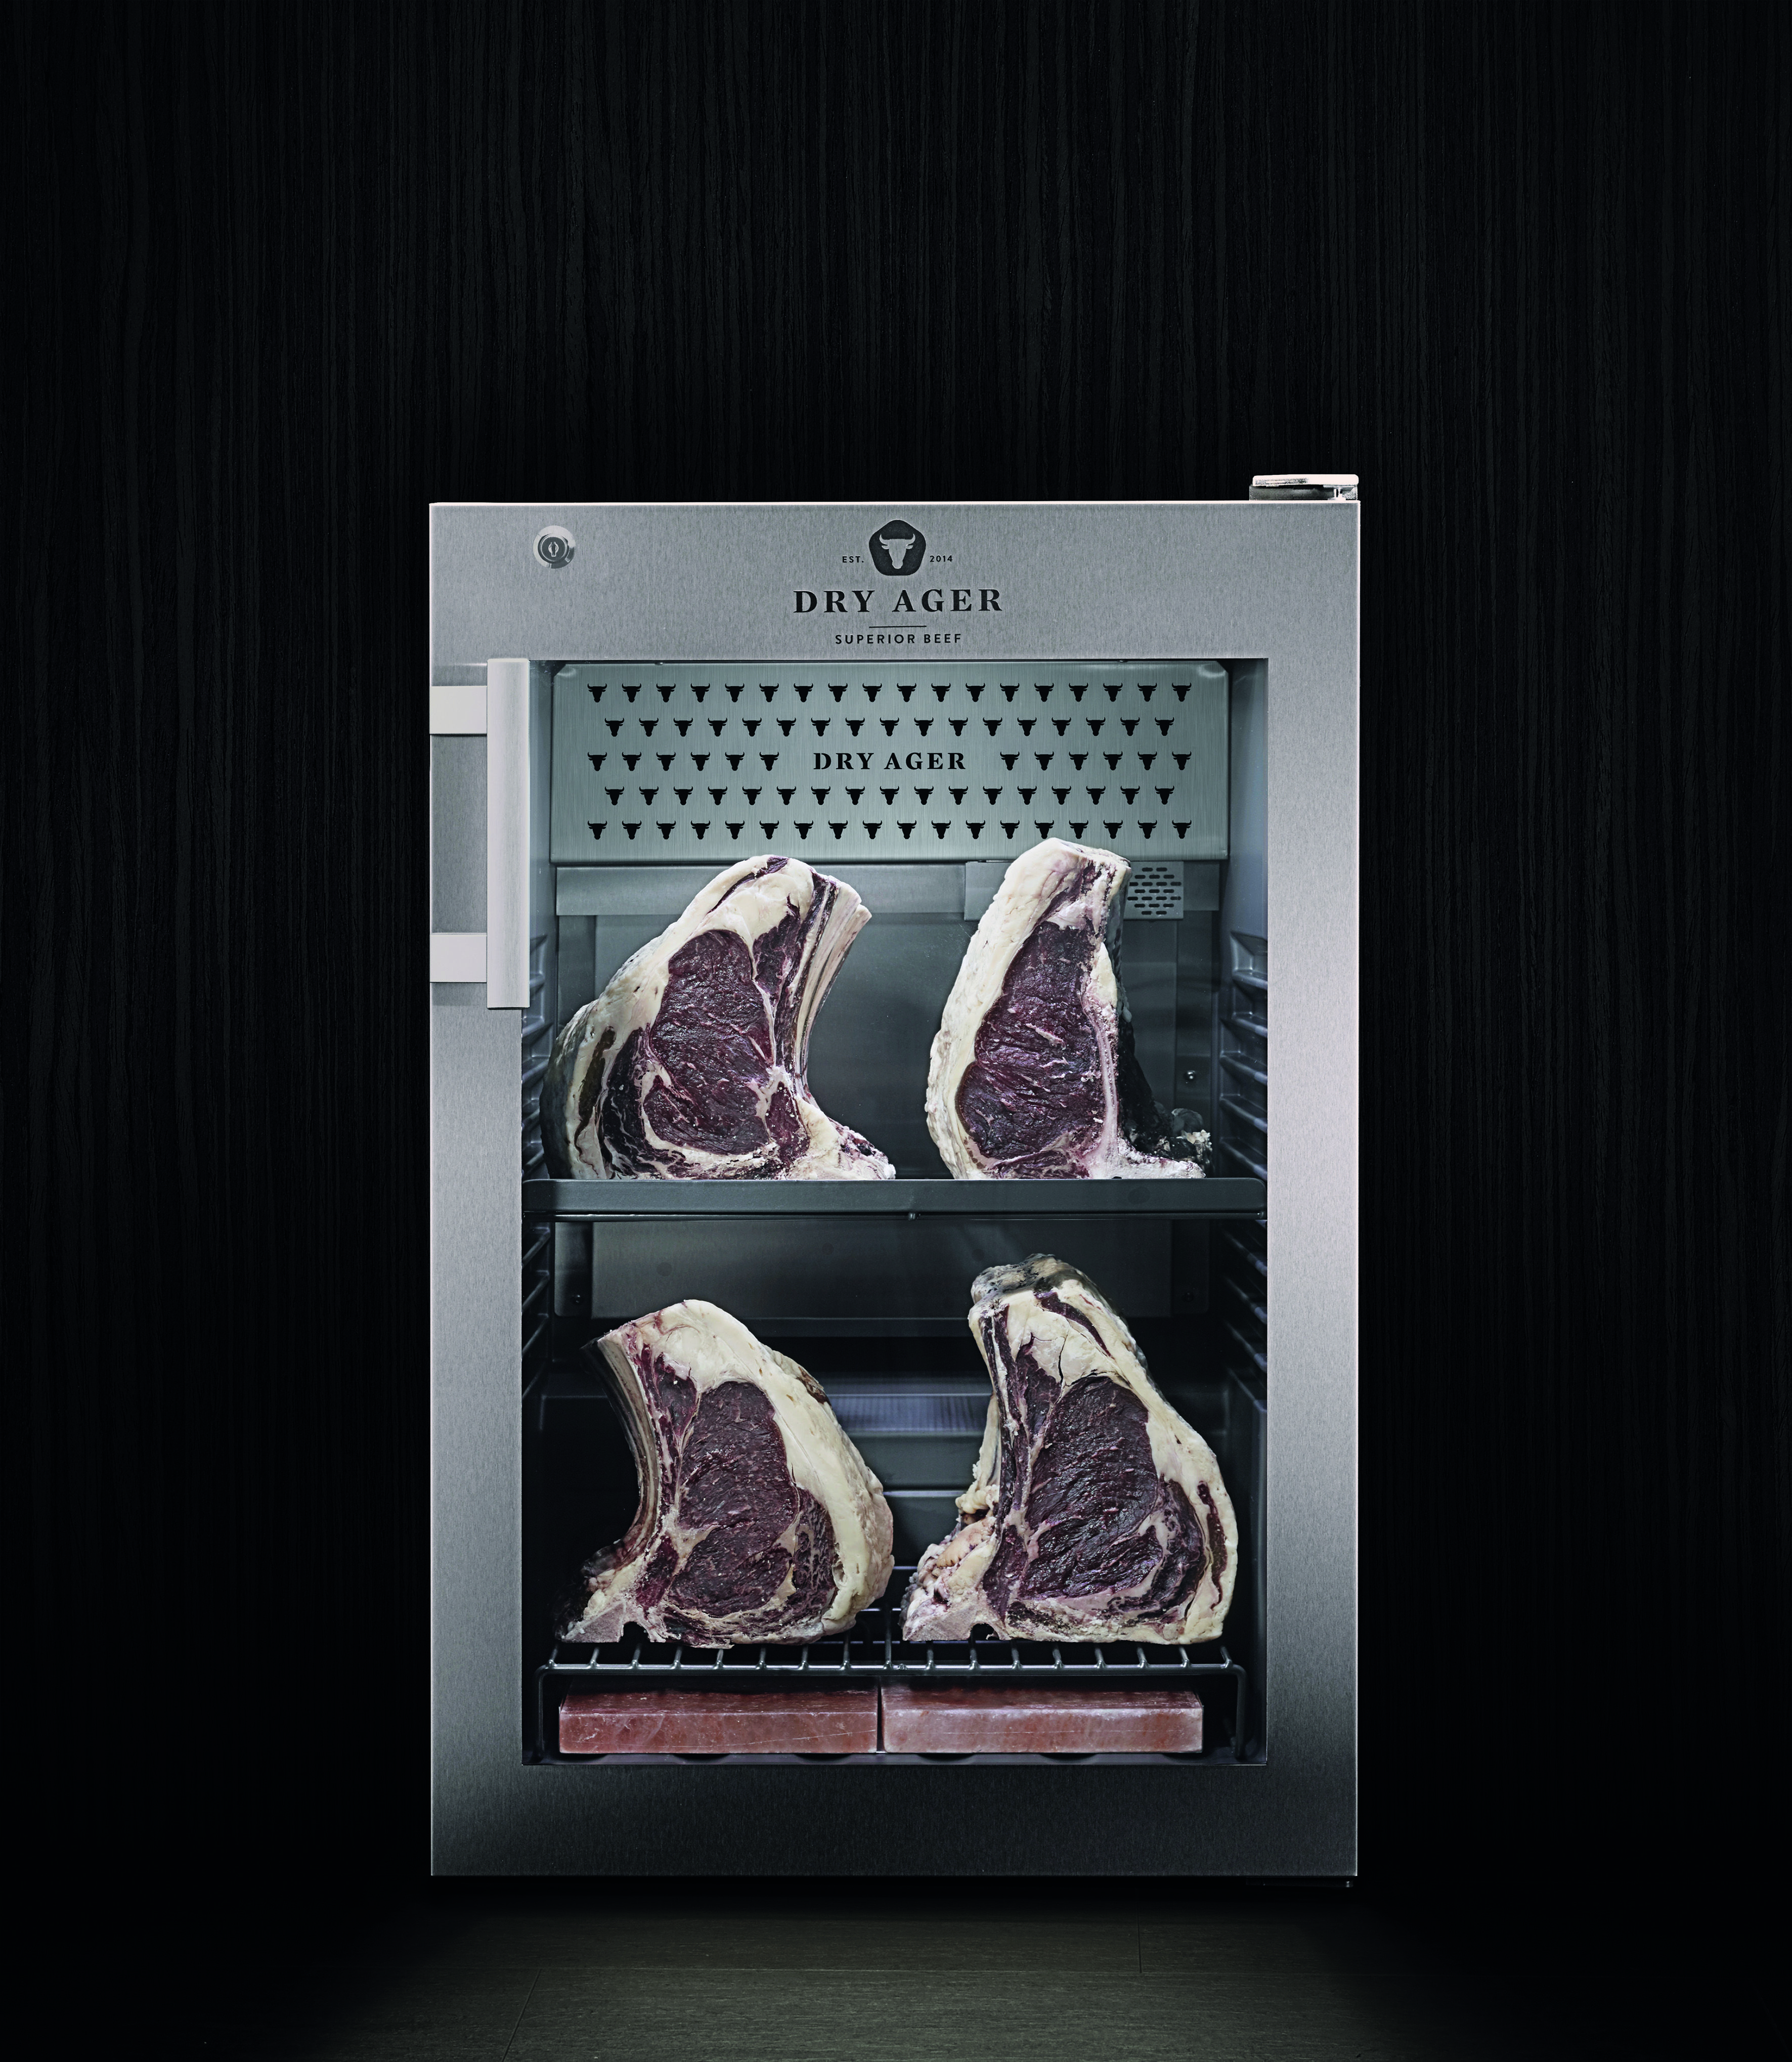 DRY AGER Artisan meat, Dried, New homes